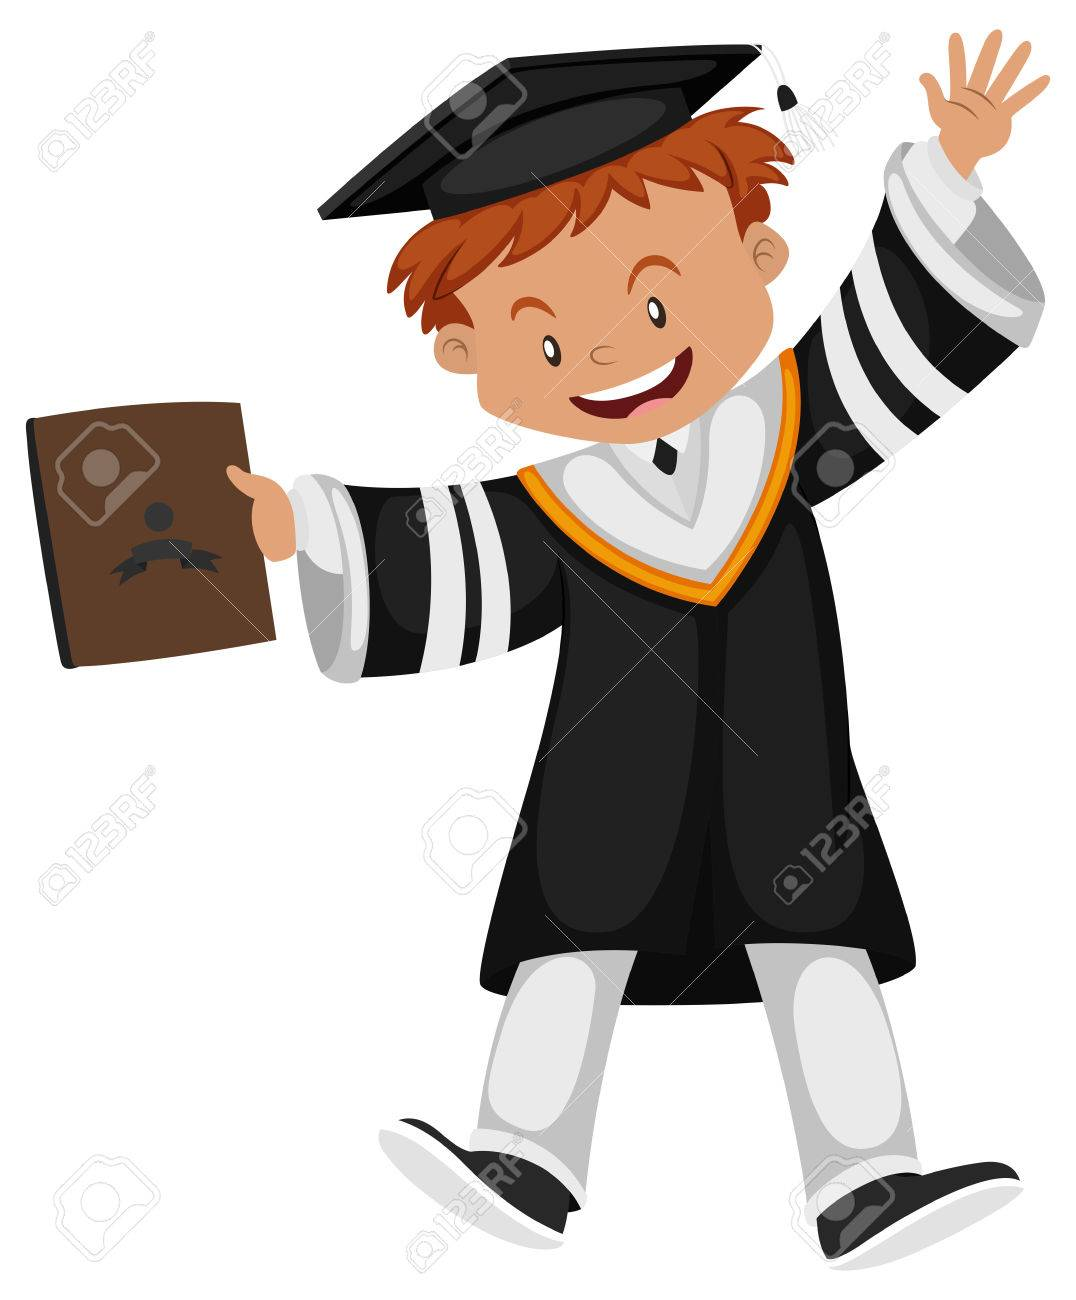 Man In Black Graduation Gown Illustration Royalty Free Cliparts ...